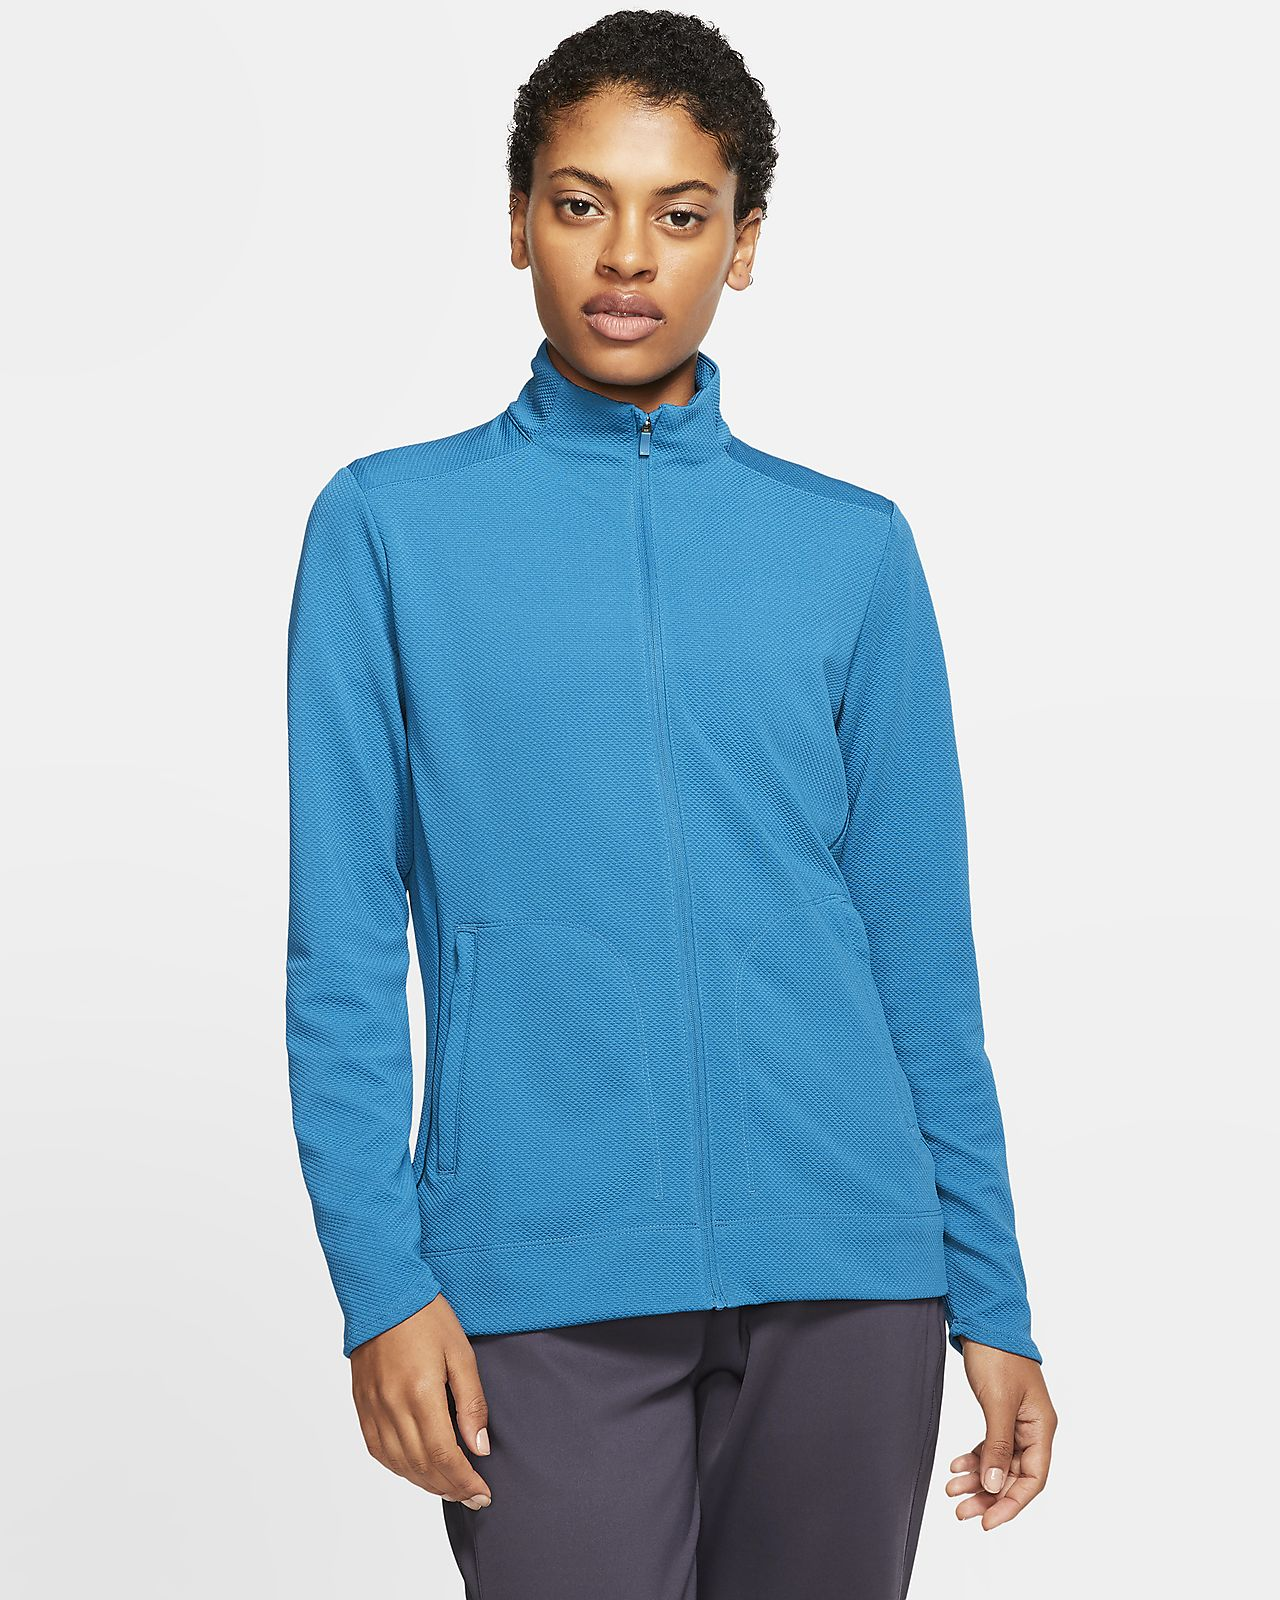 Nike Dri-FIT UV Women's Golf Jacket